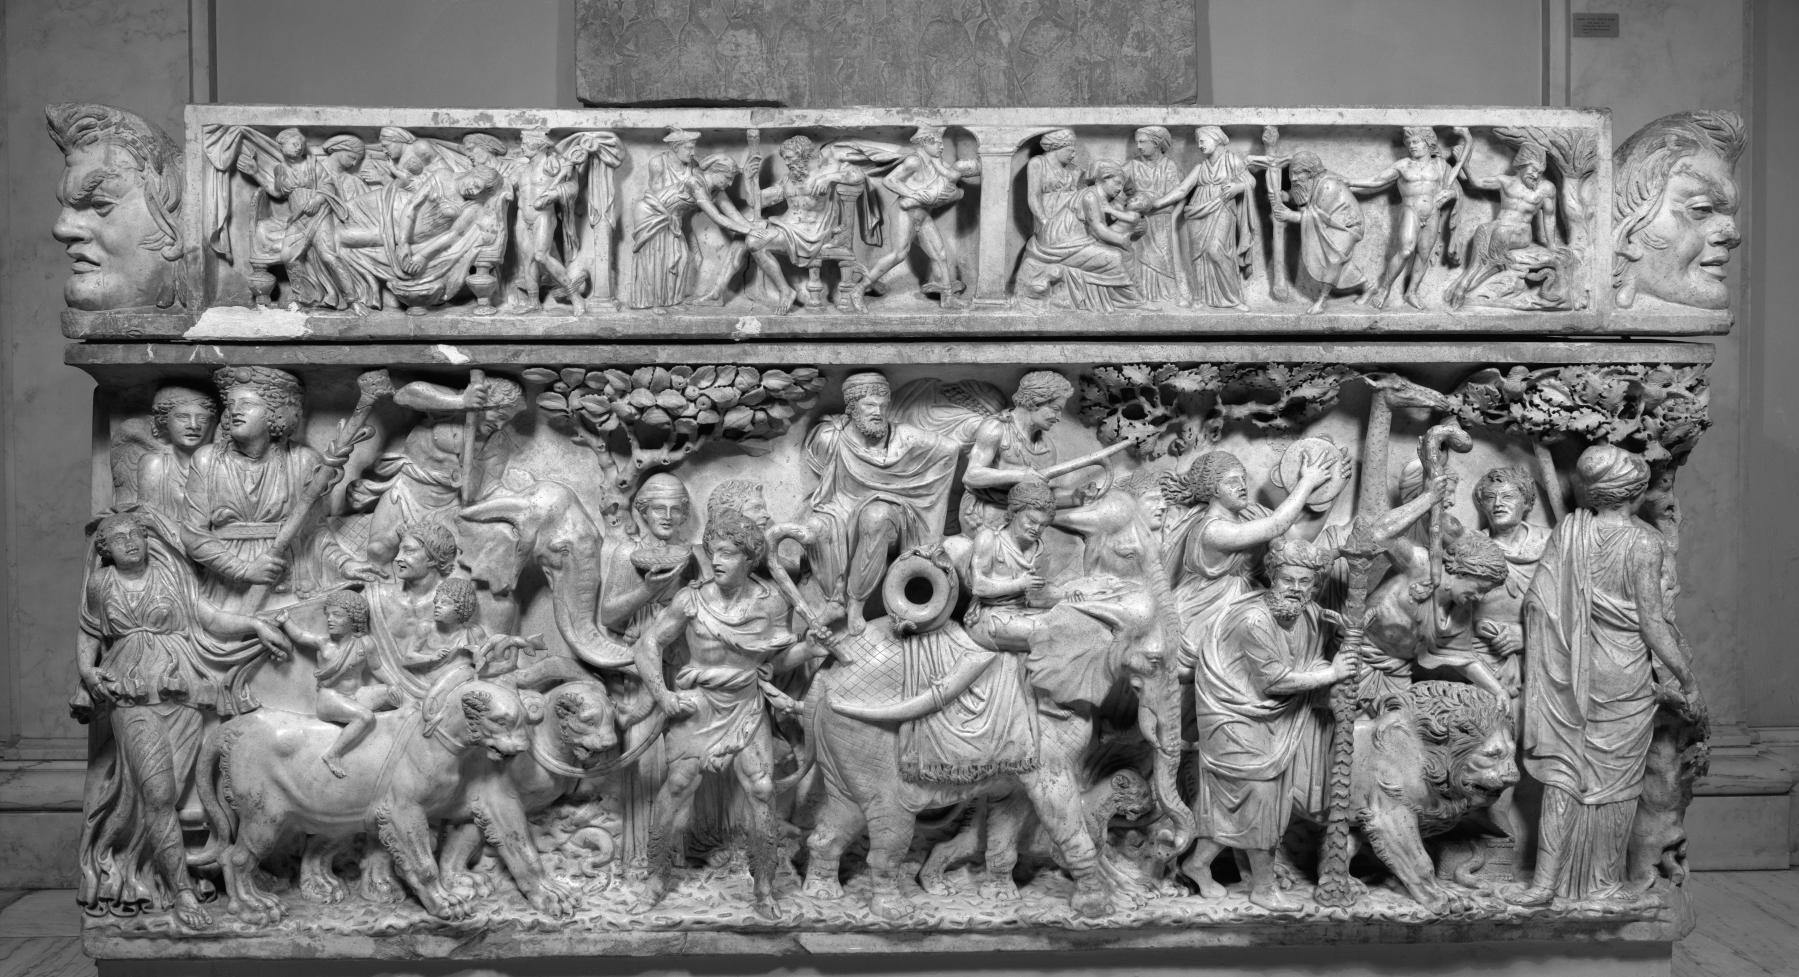 sarcophagus with the triumph of dionysis The triumph of dionysos in constantinople: a late fifth-century mosaic in context, dumbarton oaks papers 69 (2015): 15-48 on the group of late antique textile triumph of dionysus on.